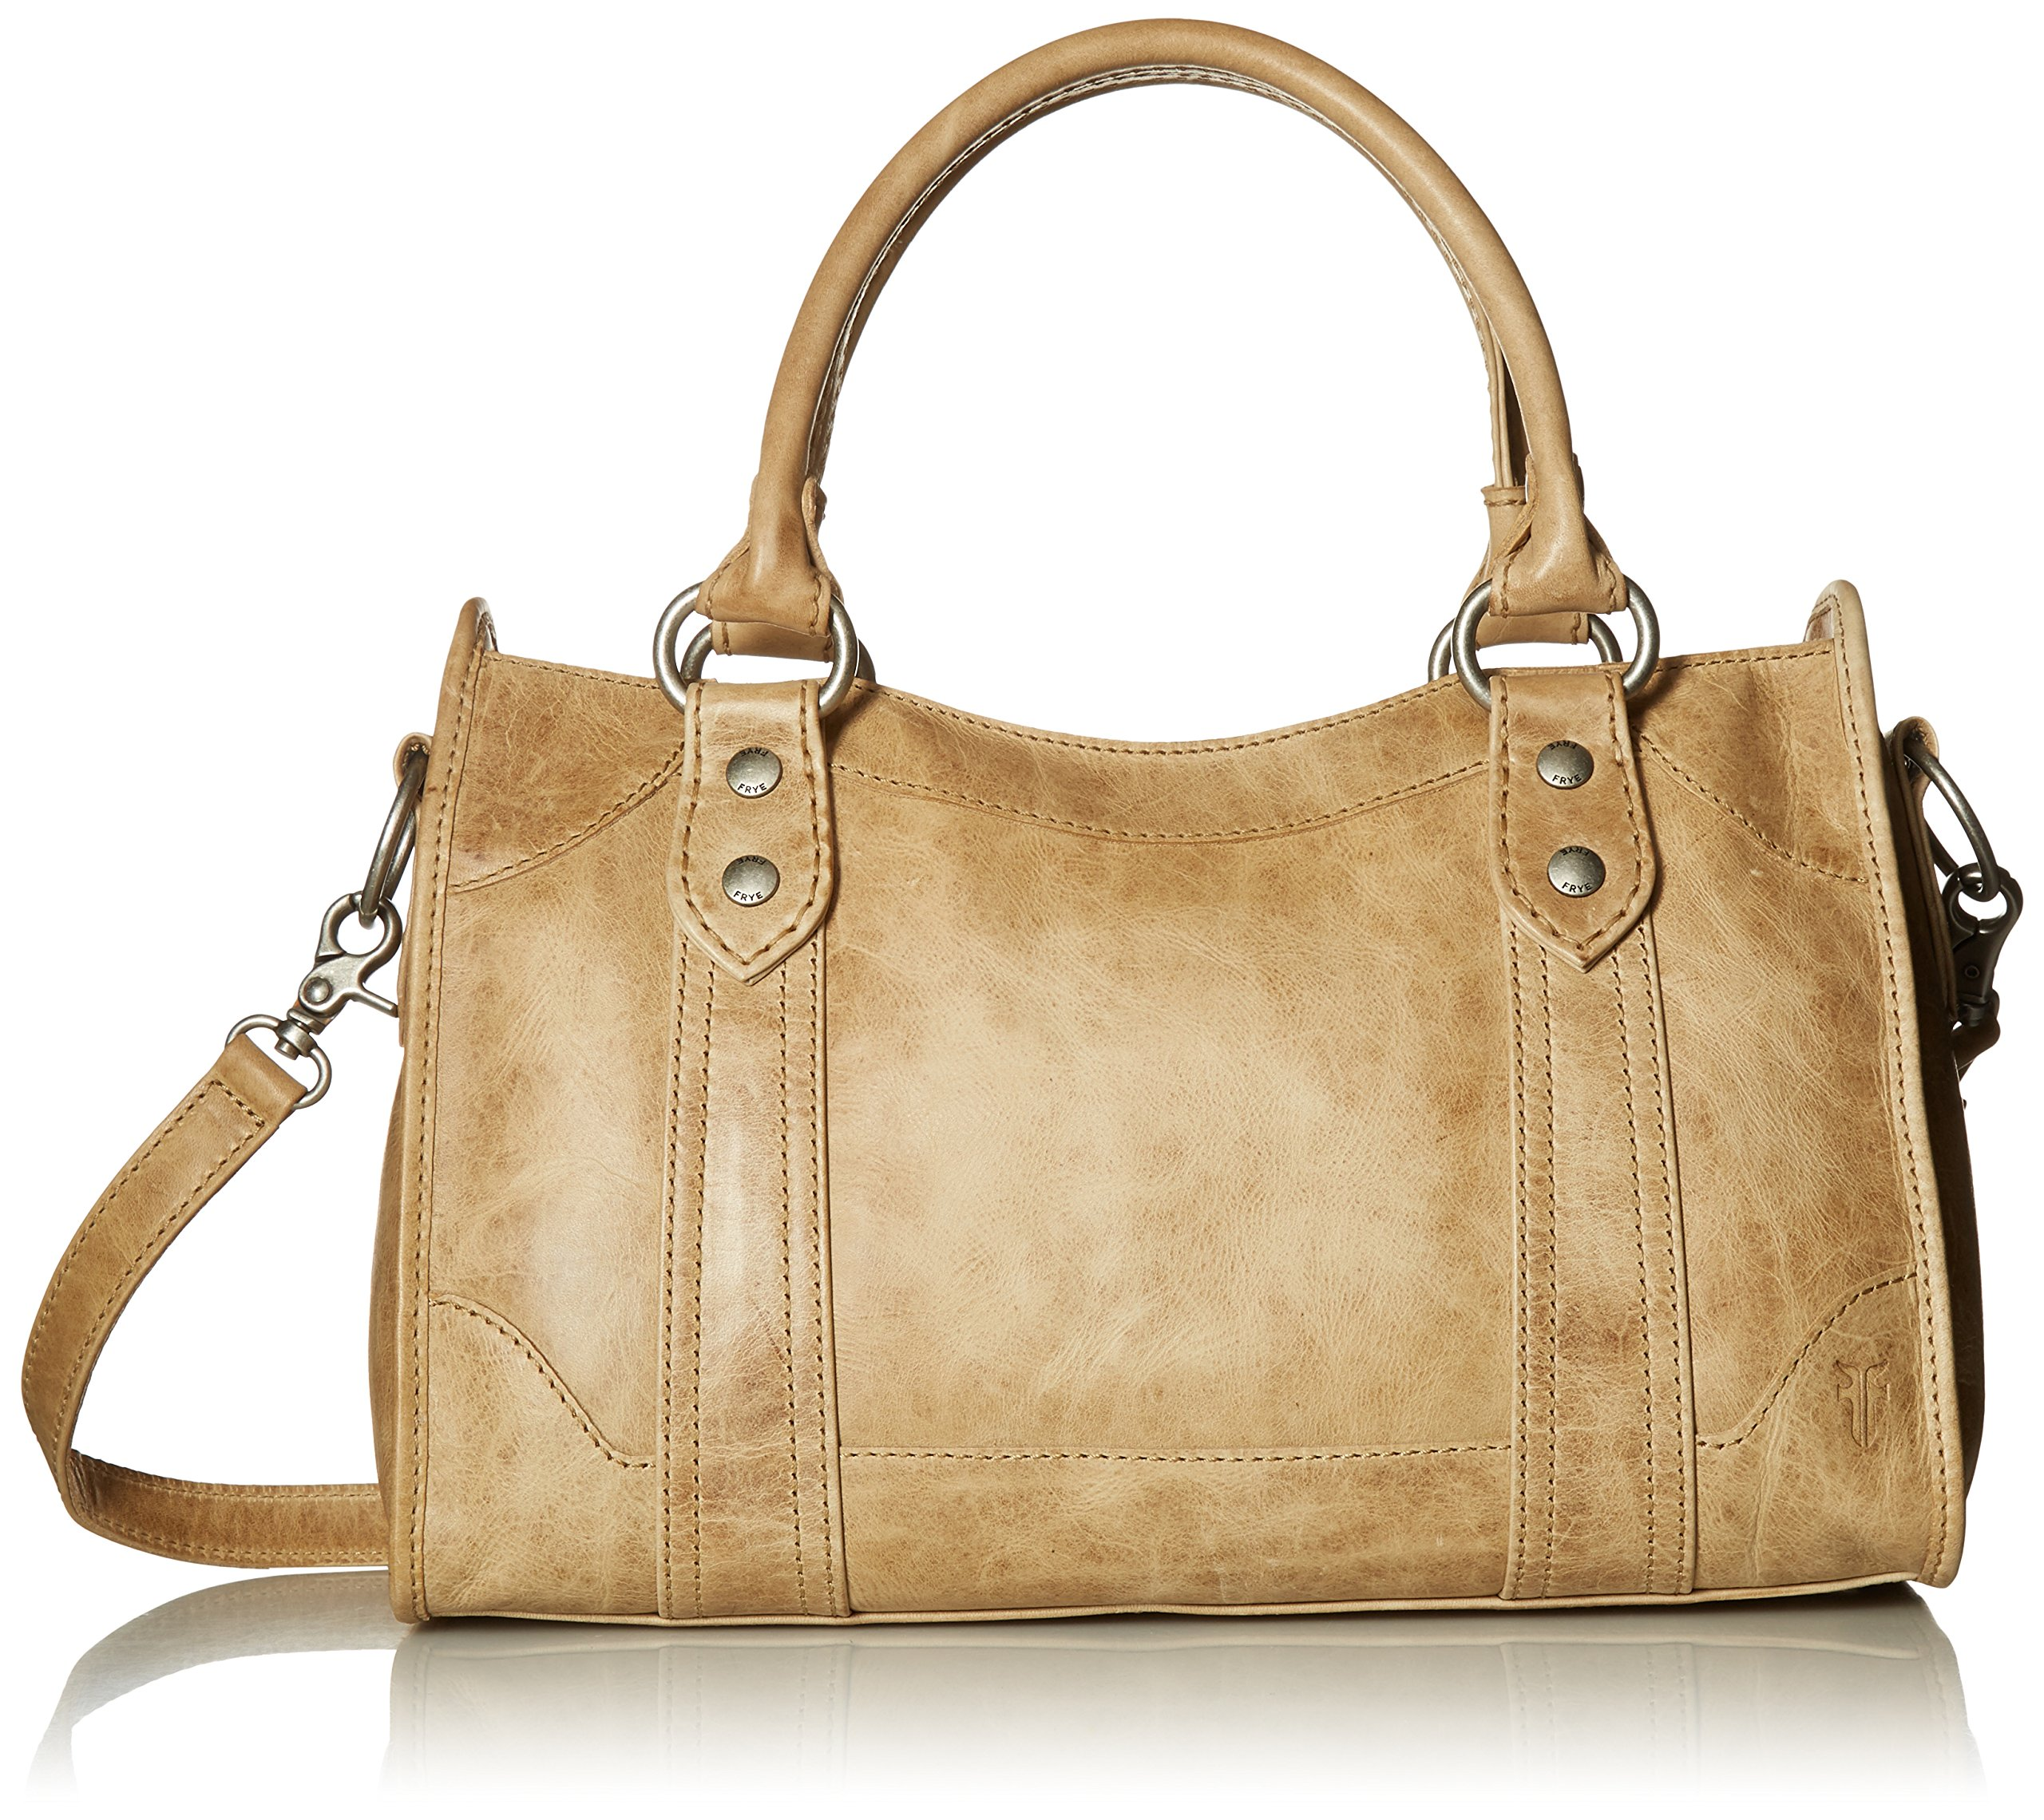 FRYE Melissa Zip Satchel Leather Handbag, Sand